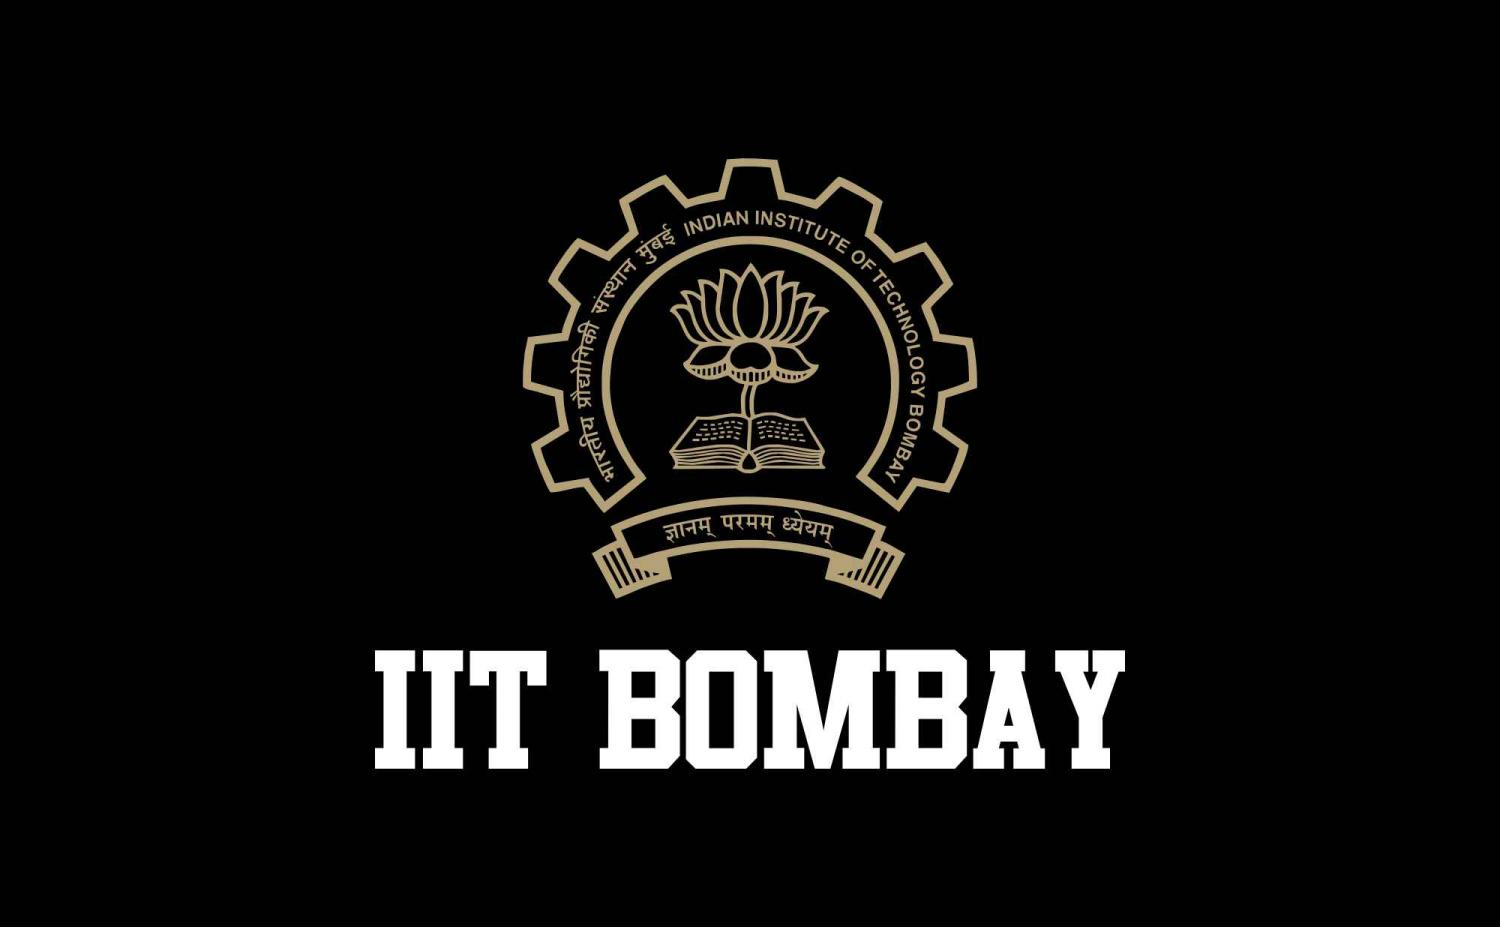 ANSYS and IIT Bombay partner to accelerate research and innovation